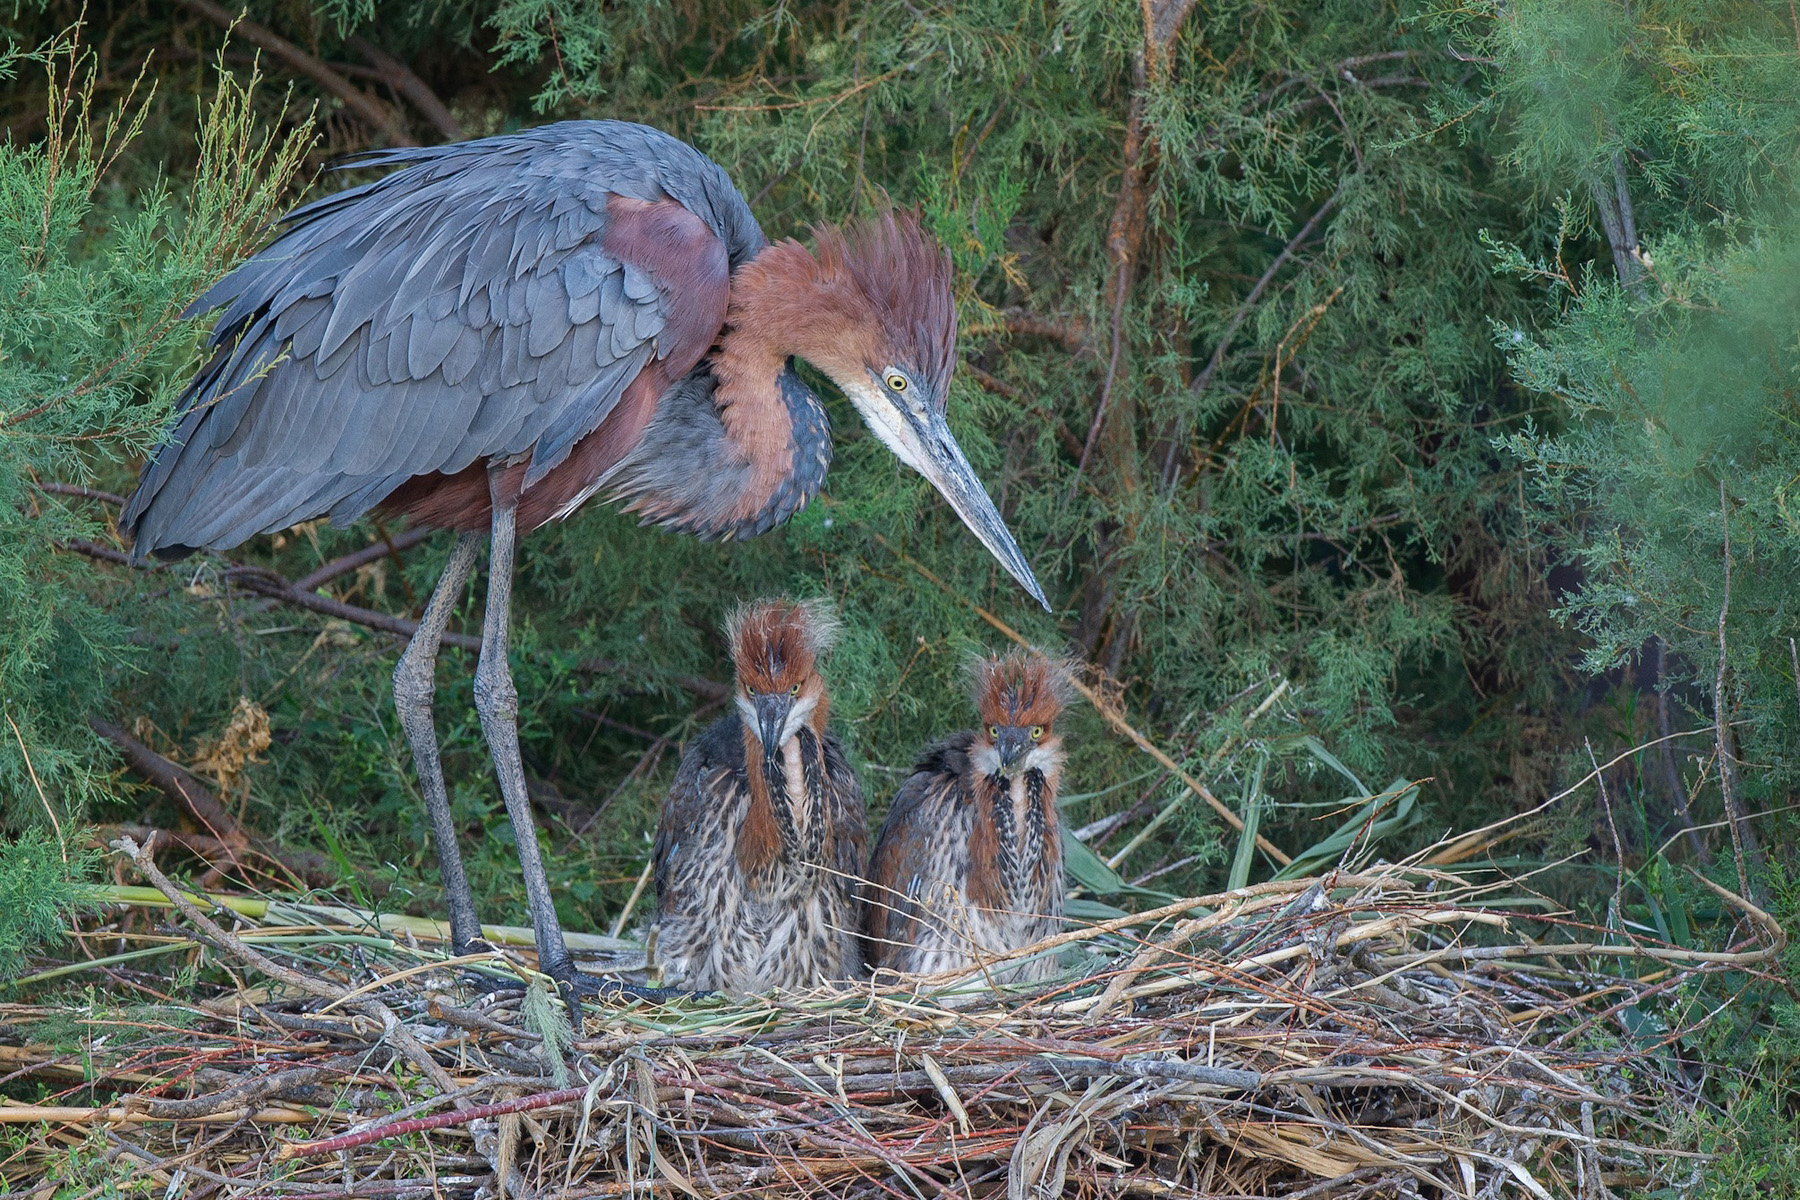 Goliath Herons born at the Réserve Africaine de Sigean